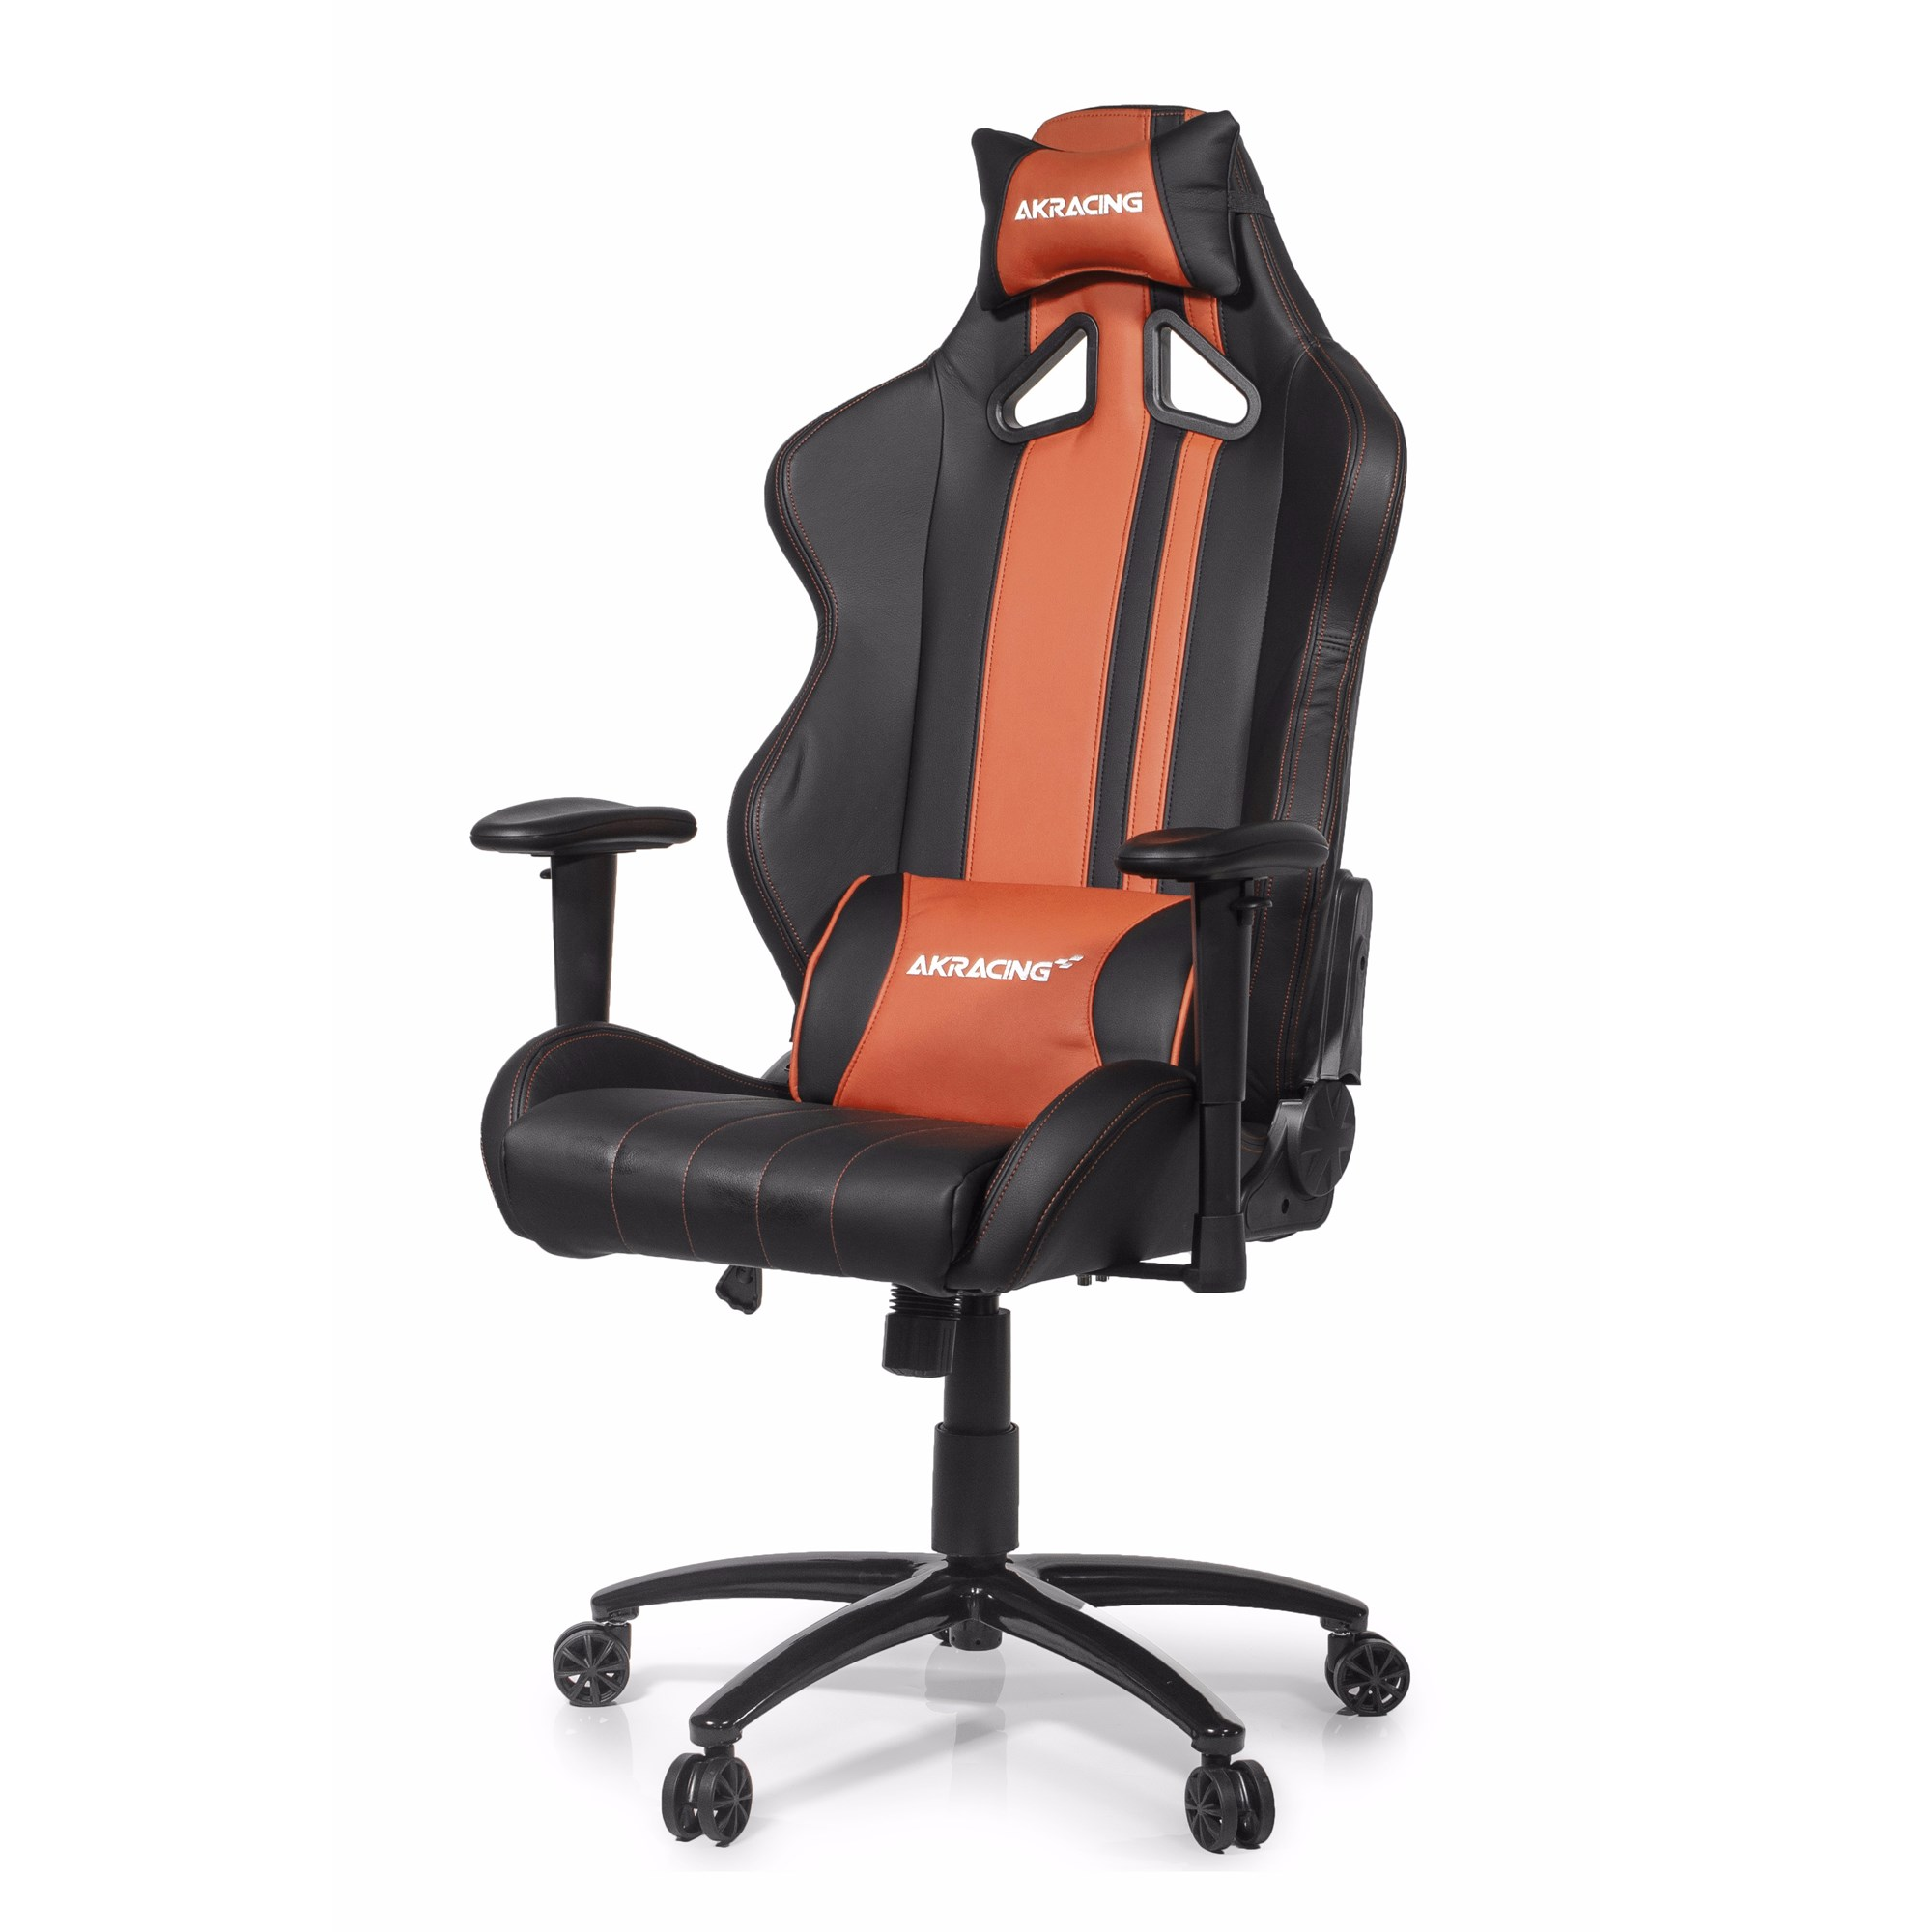 Gaiming Chair Ak Racing Rush Gaming Chair Brown Ak Rush Bw Ccl